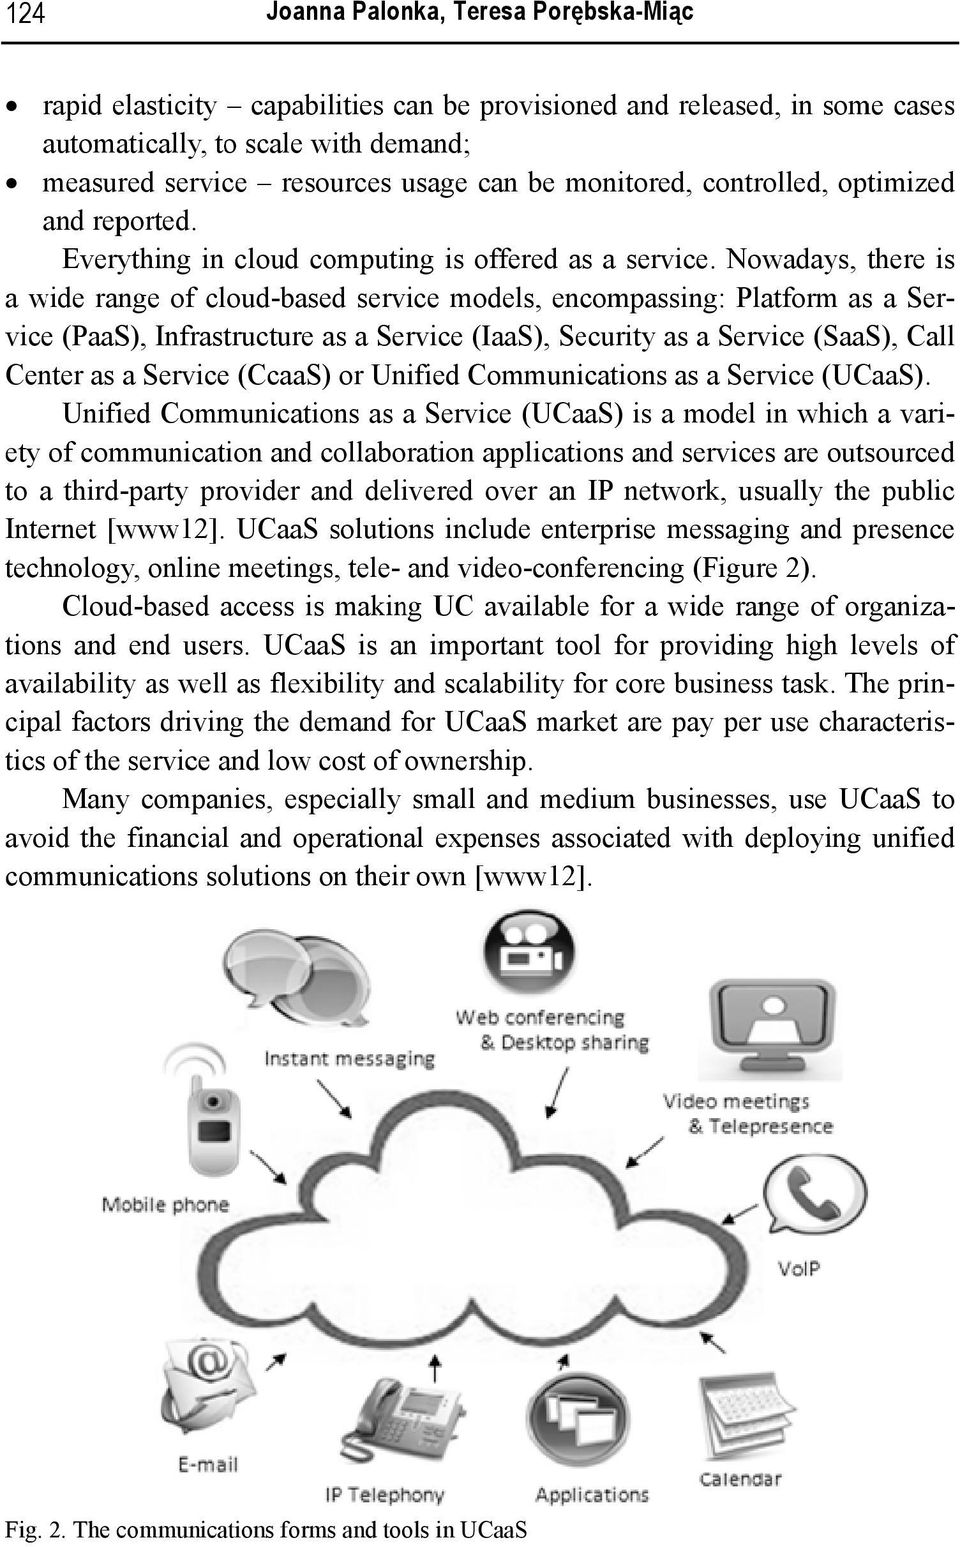 Nowadays, re is a wide range cloud-based service models, encompassing: Platform as a Ser- vice (PaaS), Infrastructure as a Service (IaaS), Security as a Serv vice (SaaS), Call Center as a Serv vice